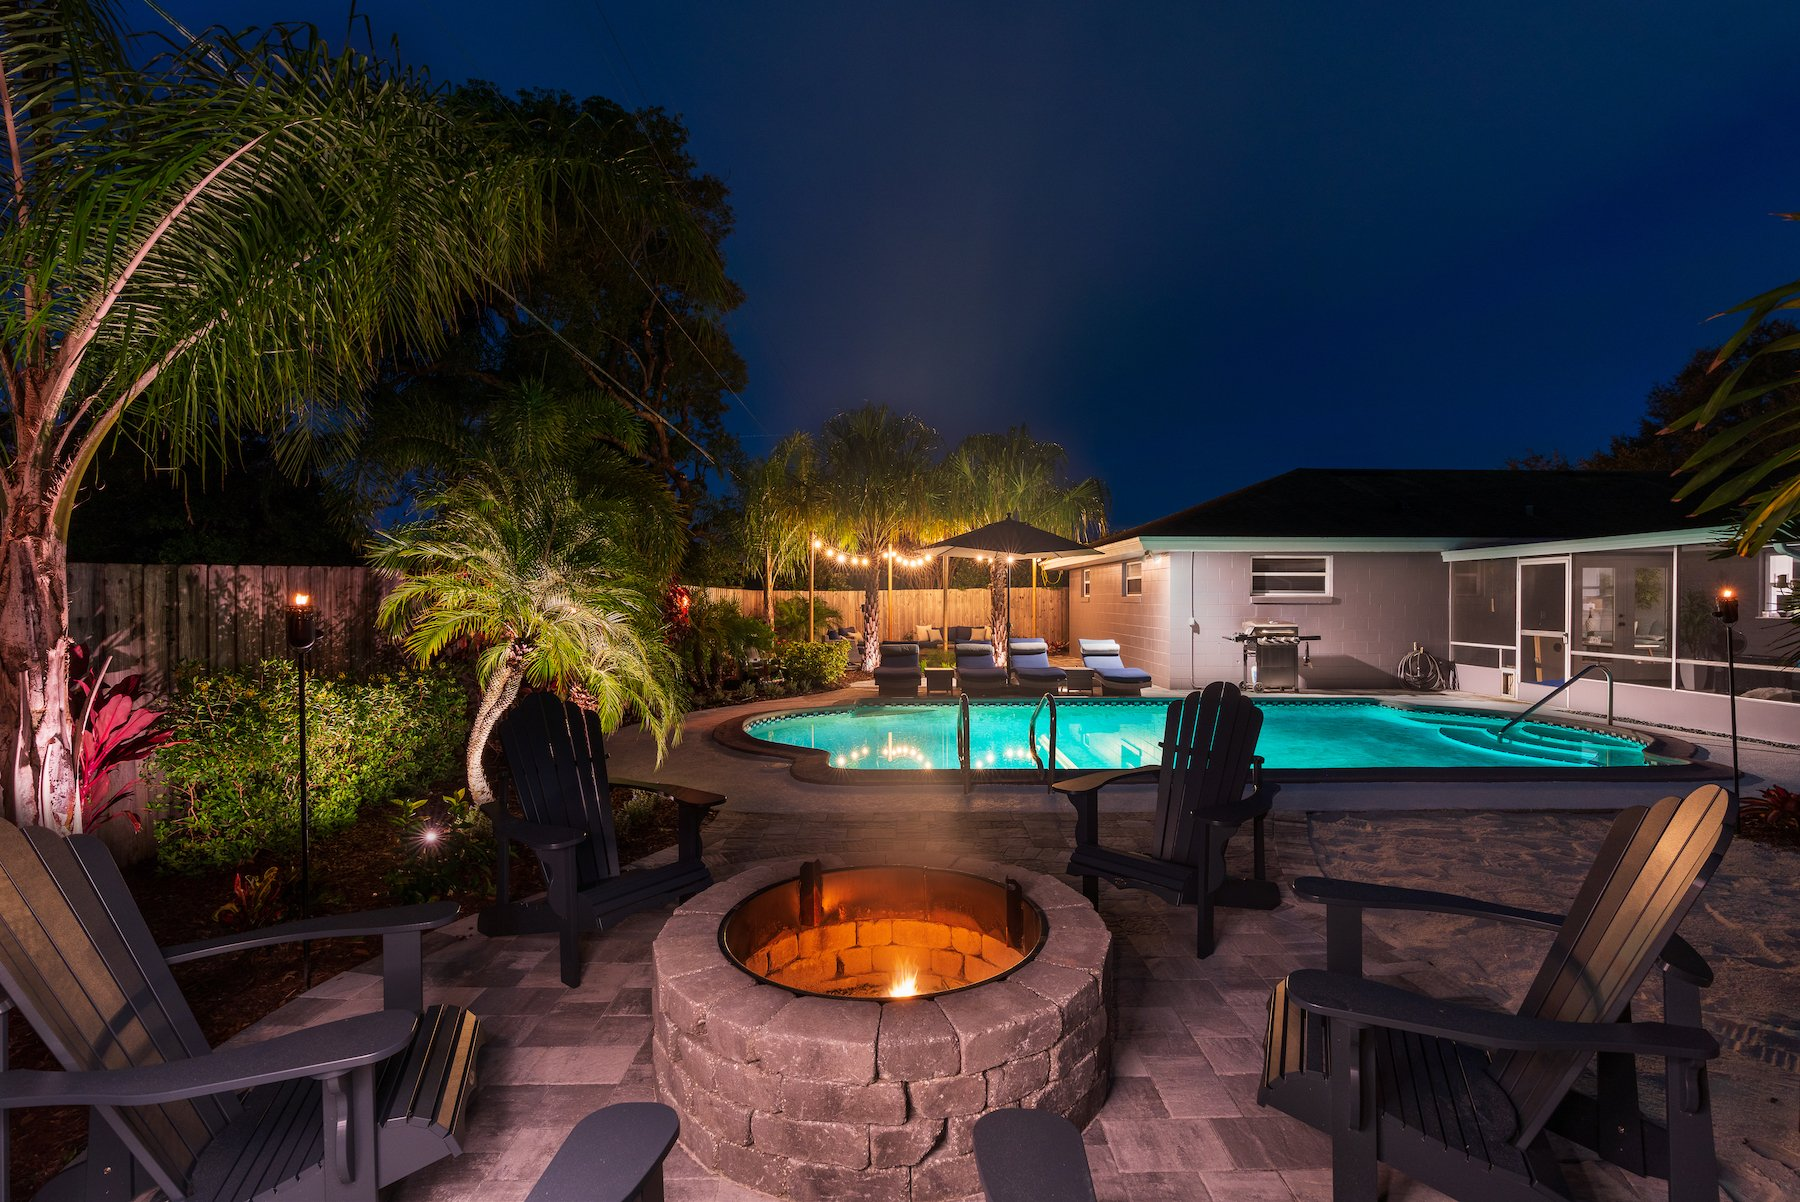 Backyard paradise with pool and fire pit